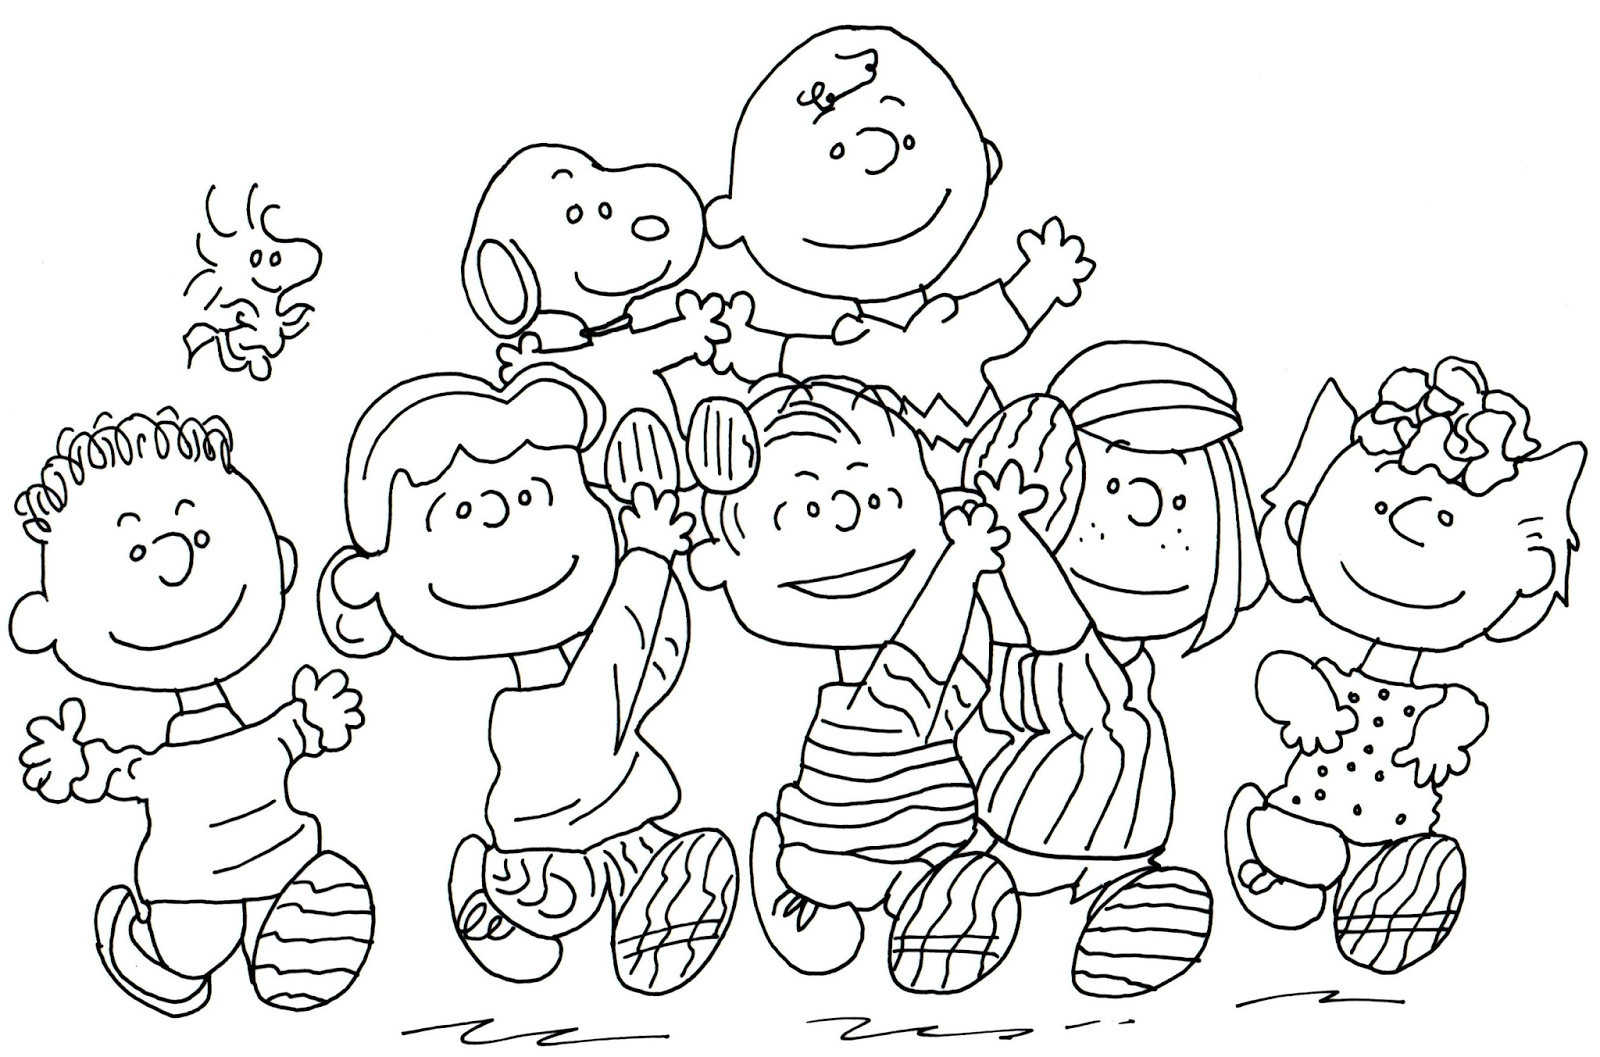 Peanut Coloring Pages